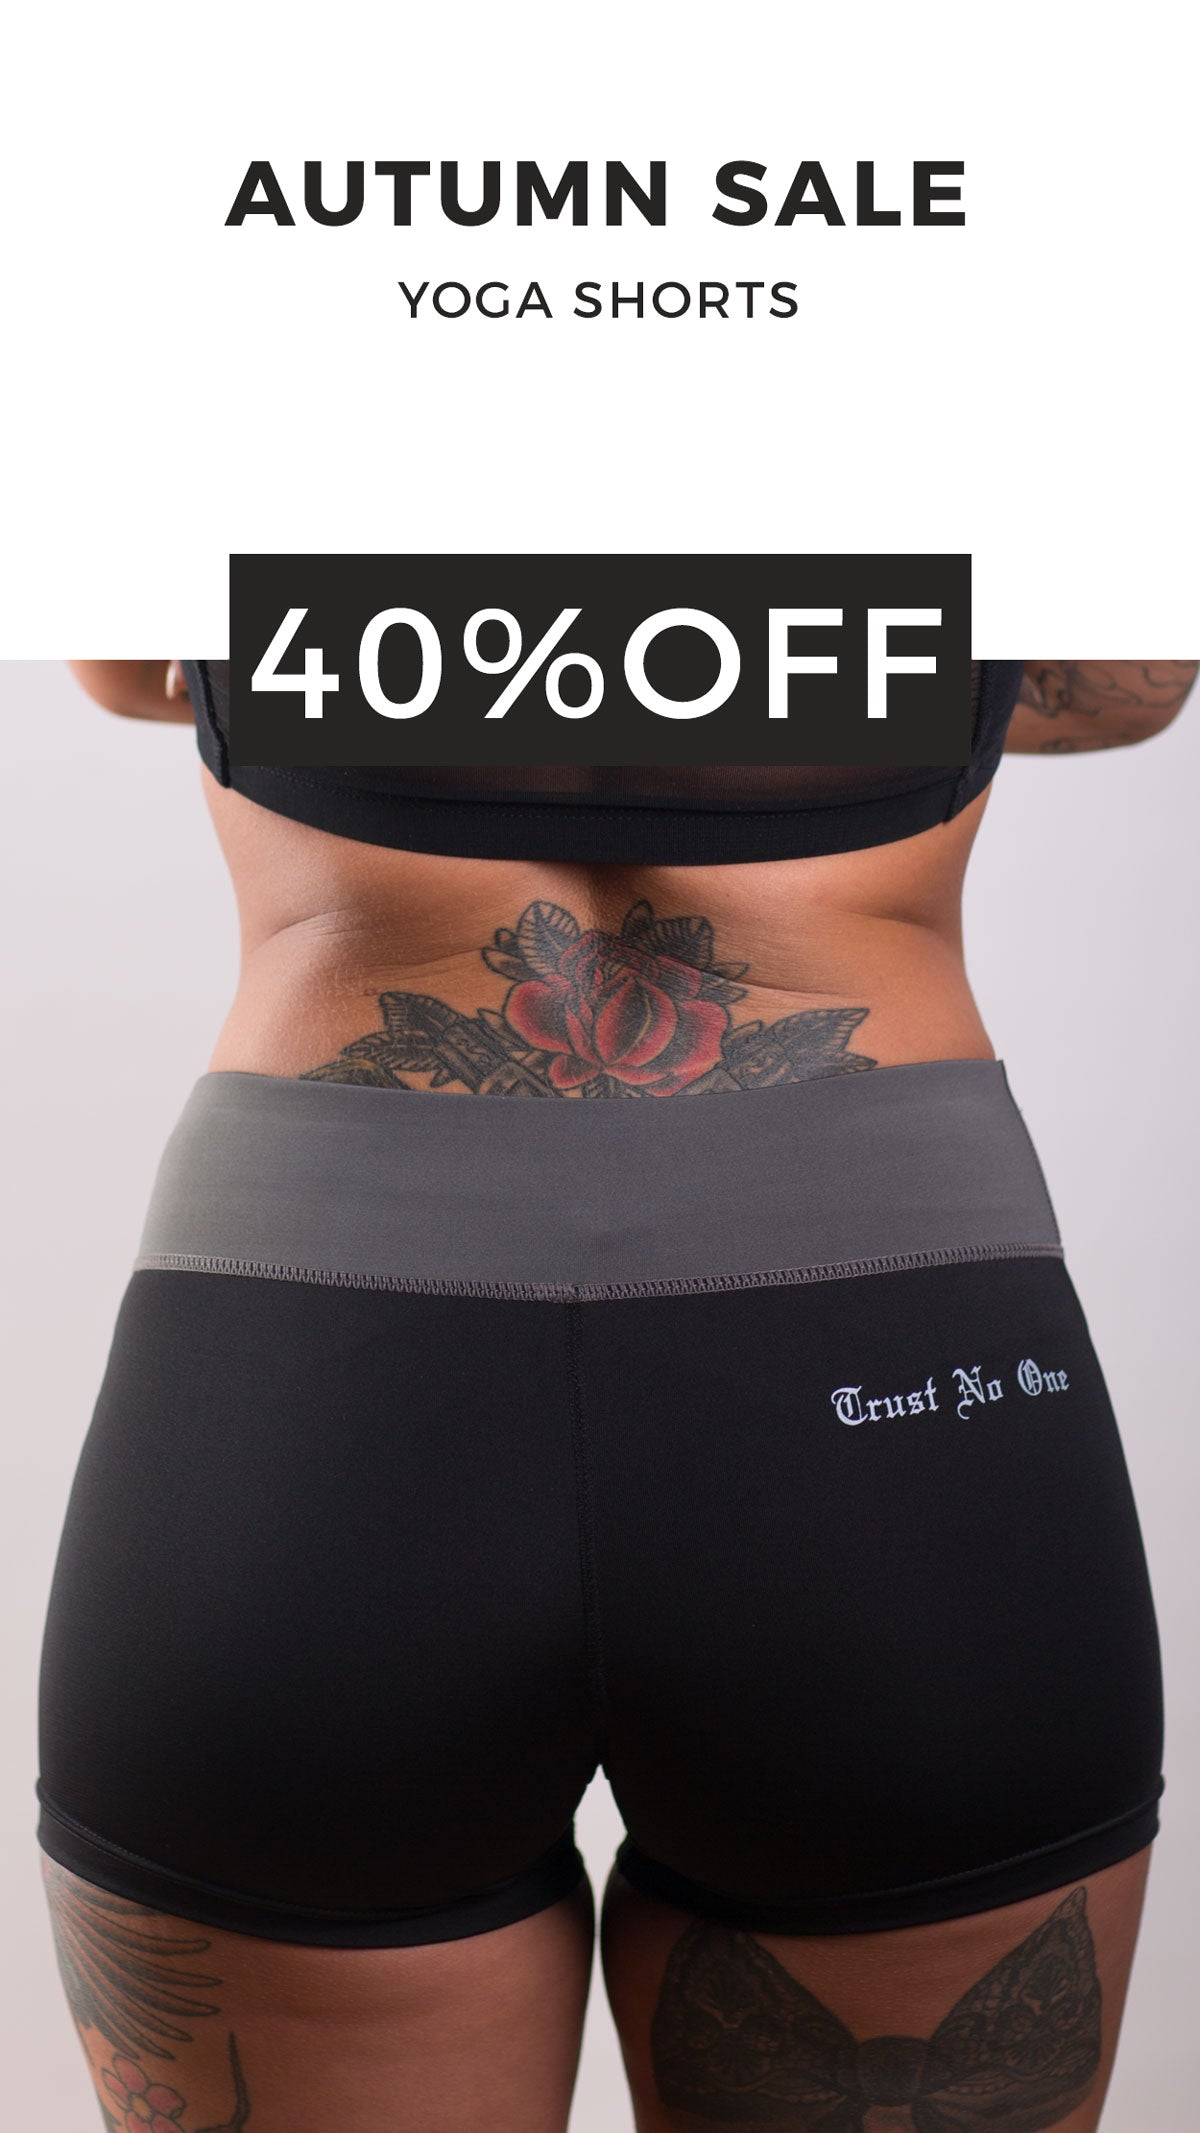 Ladies Trust No One Yoga Workout Shorts 40% Off 40 Percent discount markdown sale girls womens female booty